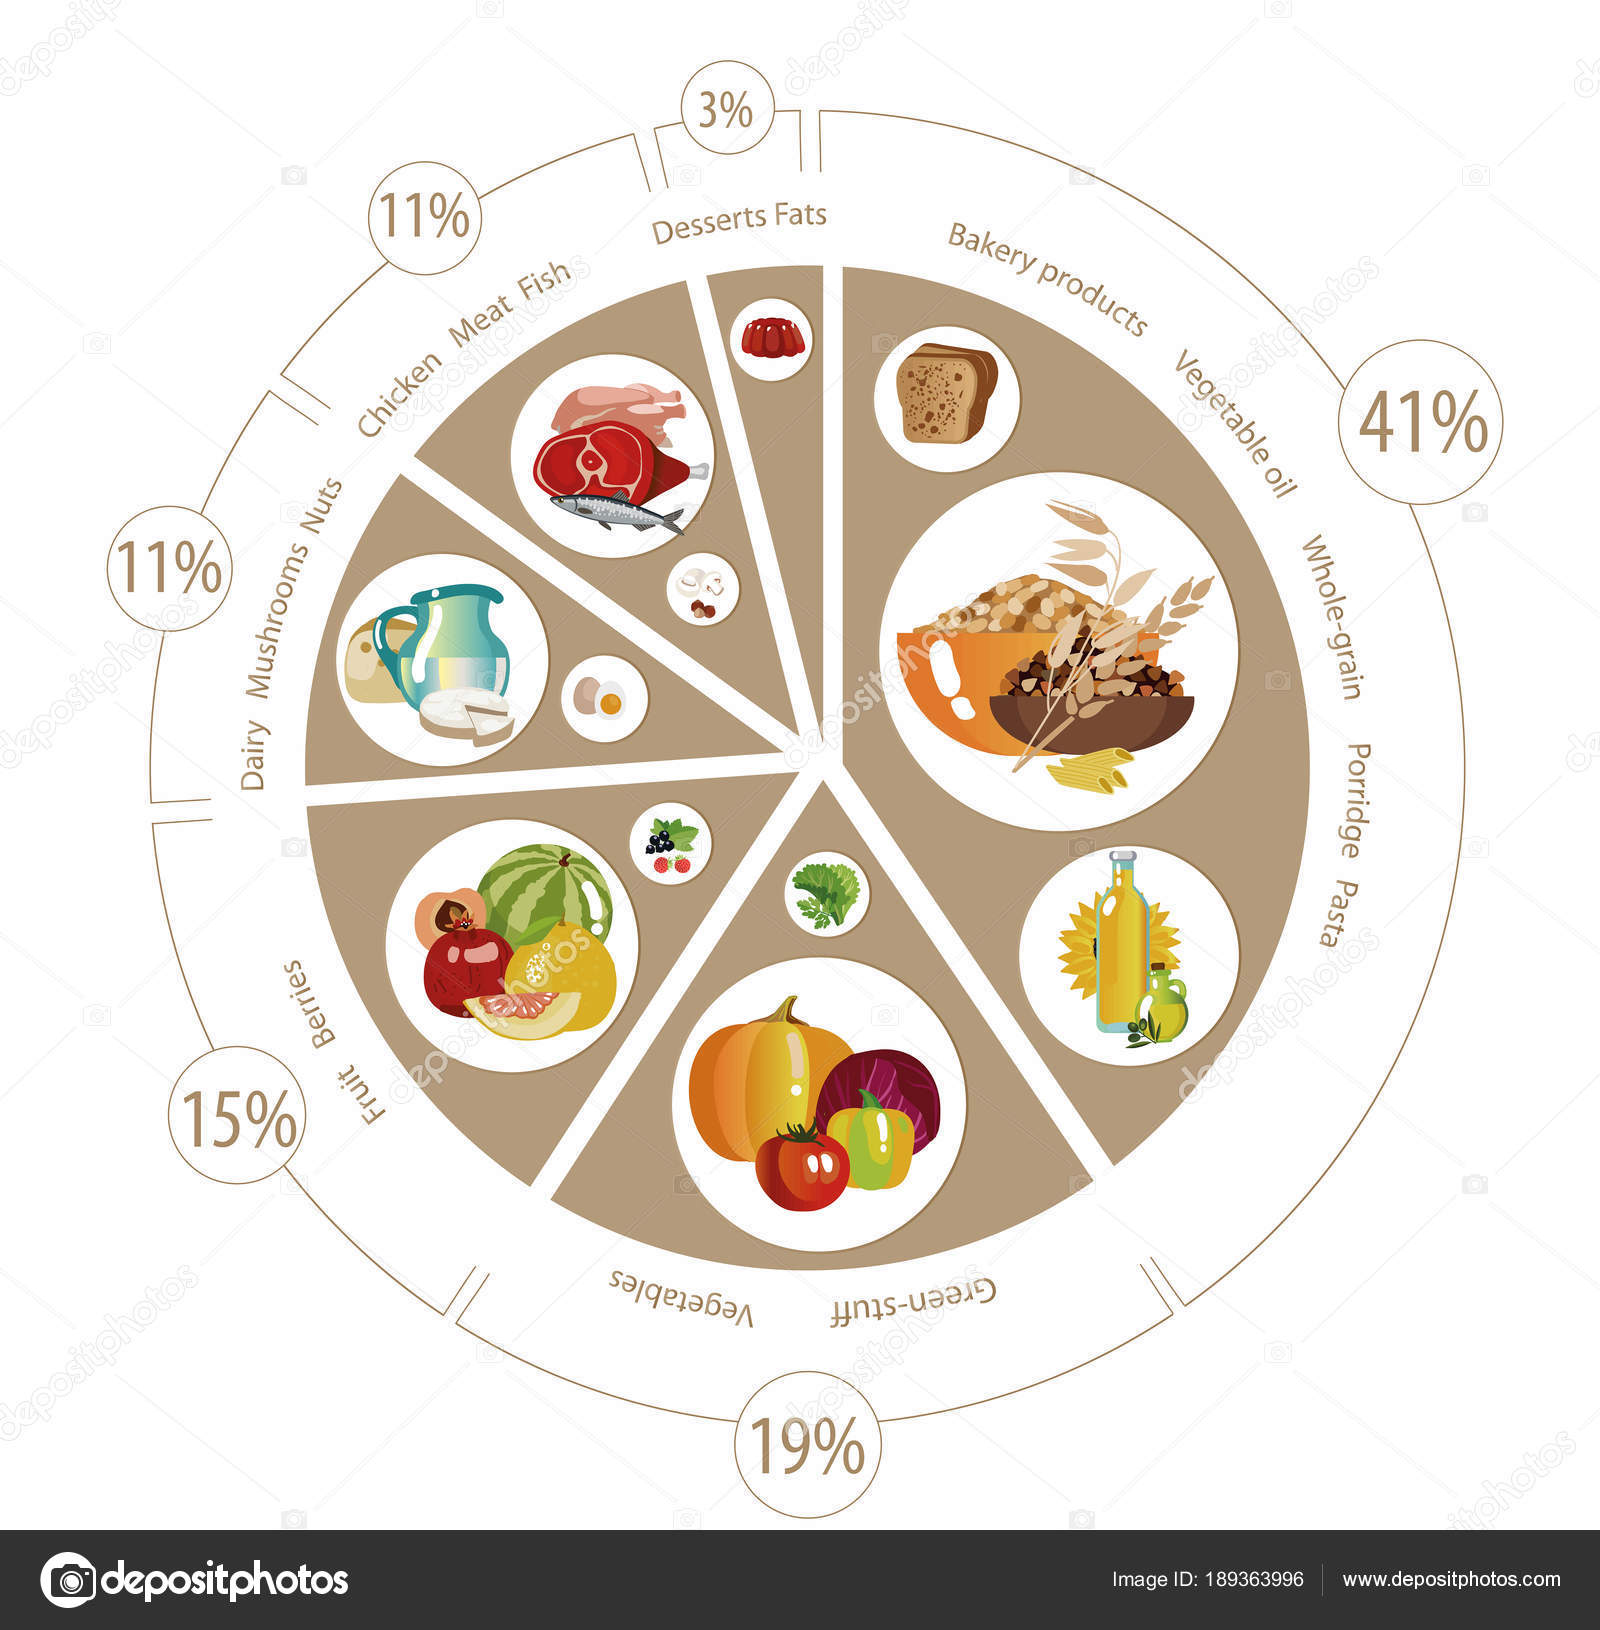 Food pyramid of pie chart stock vector alfaolga 189363996 food pyramid in the form of a pie chart recommendation for a healthy diet norms of products for the daily diet vector by alfaolga nvjuhfo Choice Image